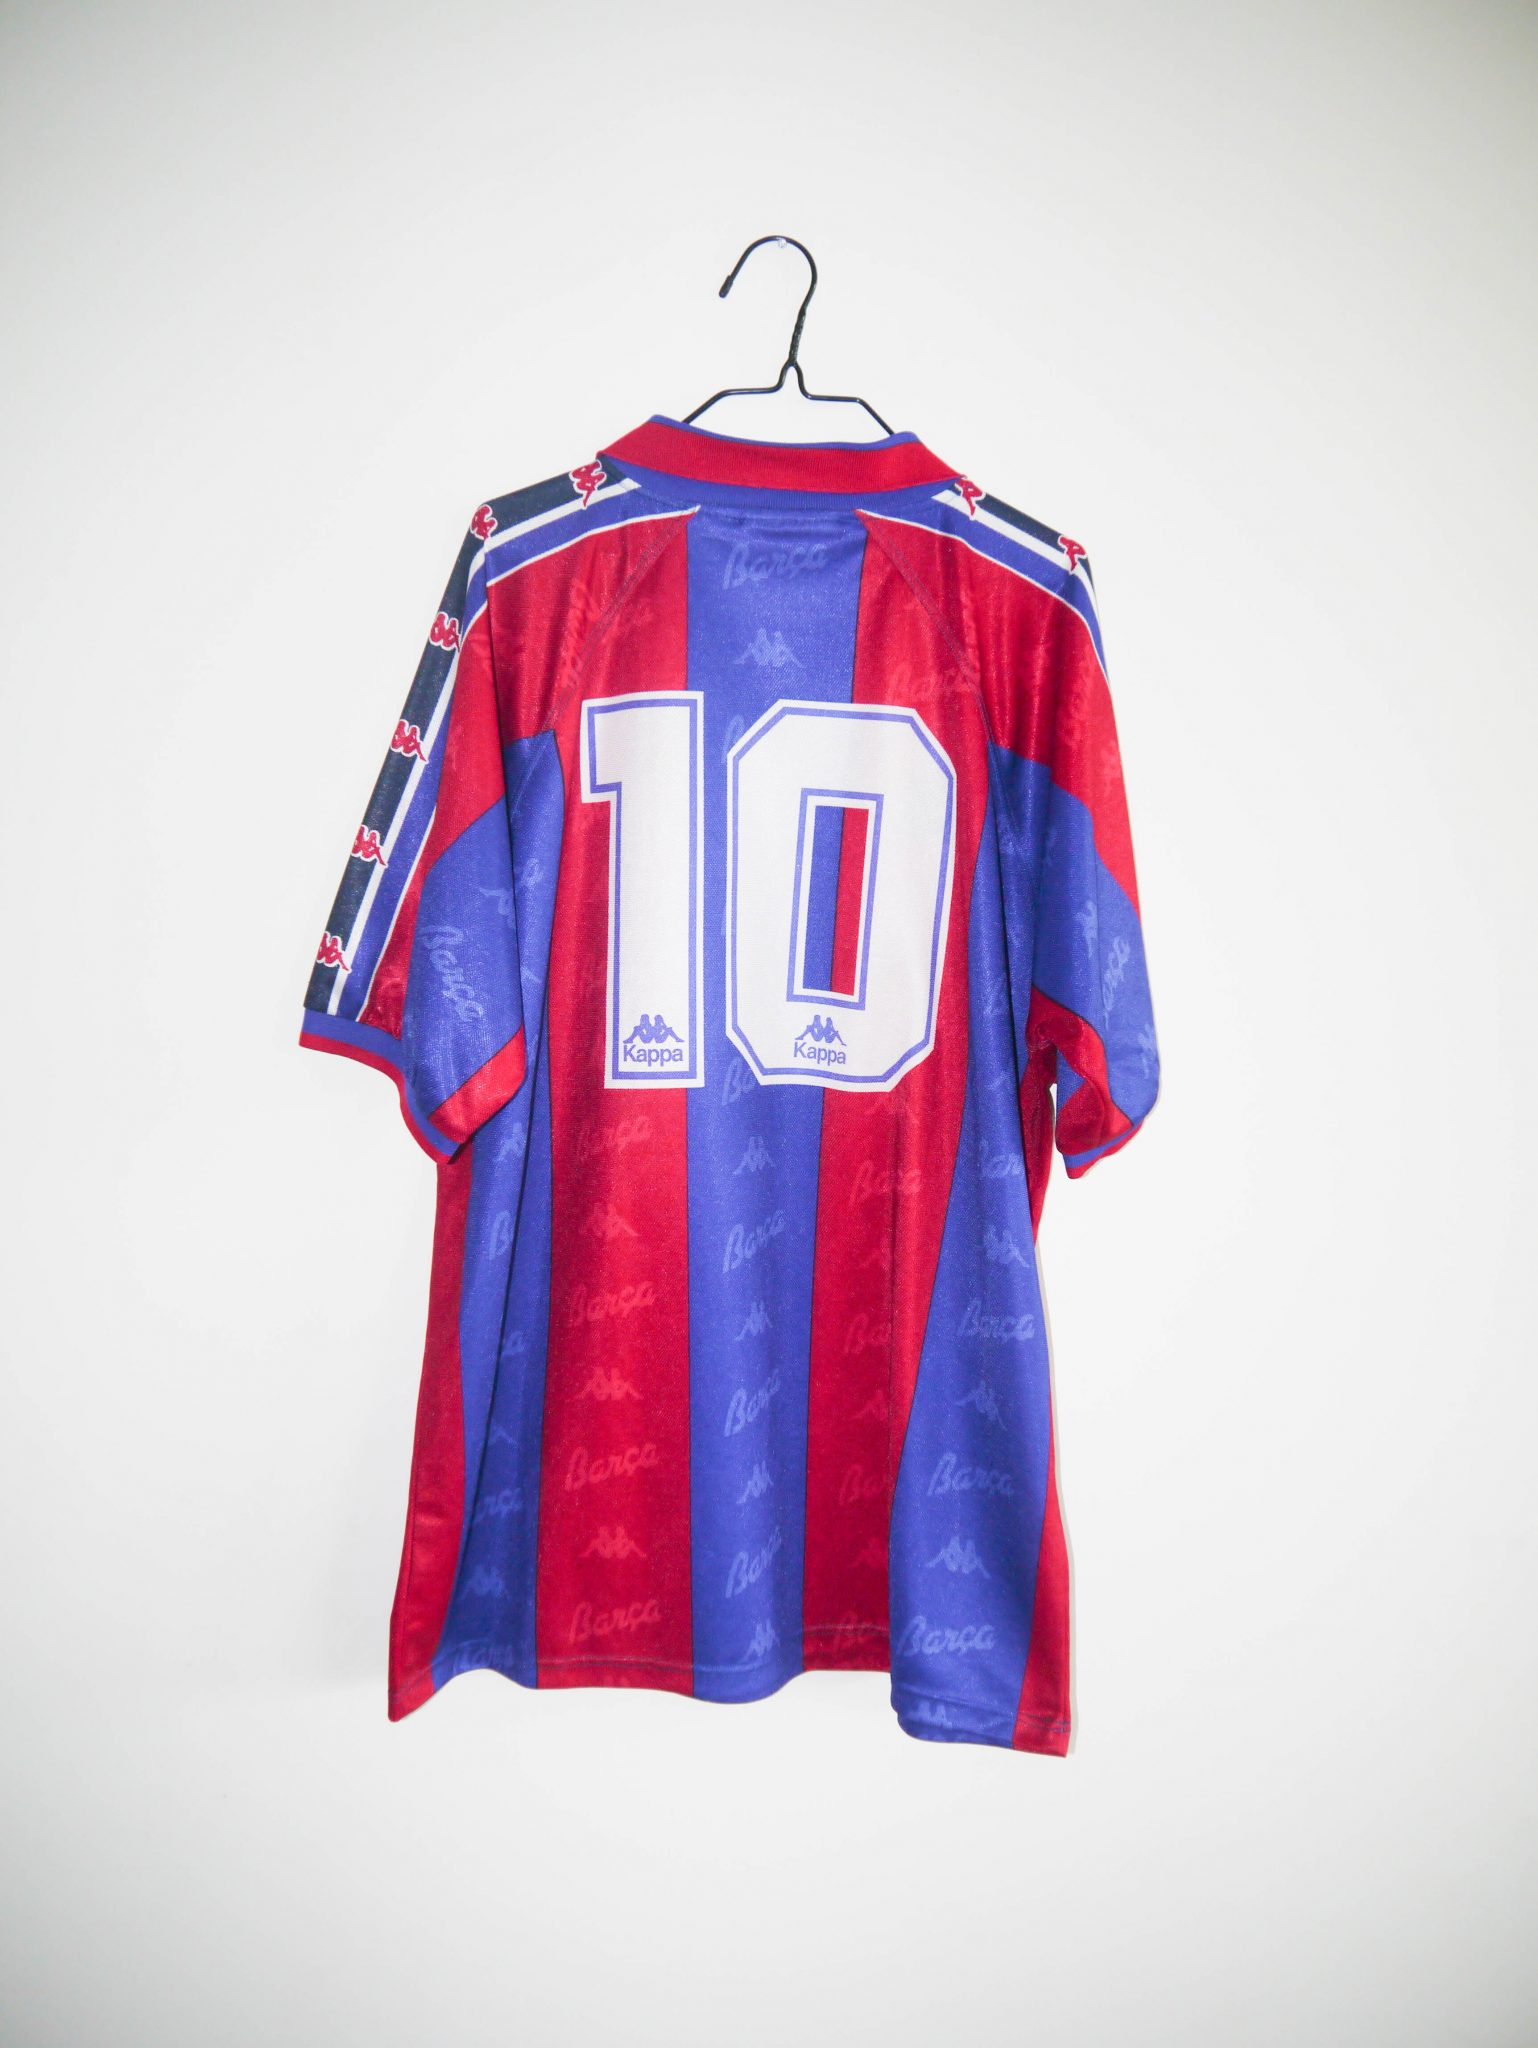 buy popular a8fa5 64ad6 Vintage soccer / football jerseys for fans & collectors | RB ...